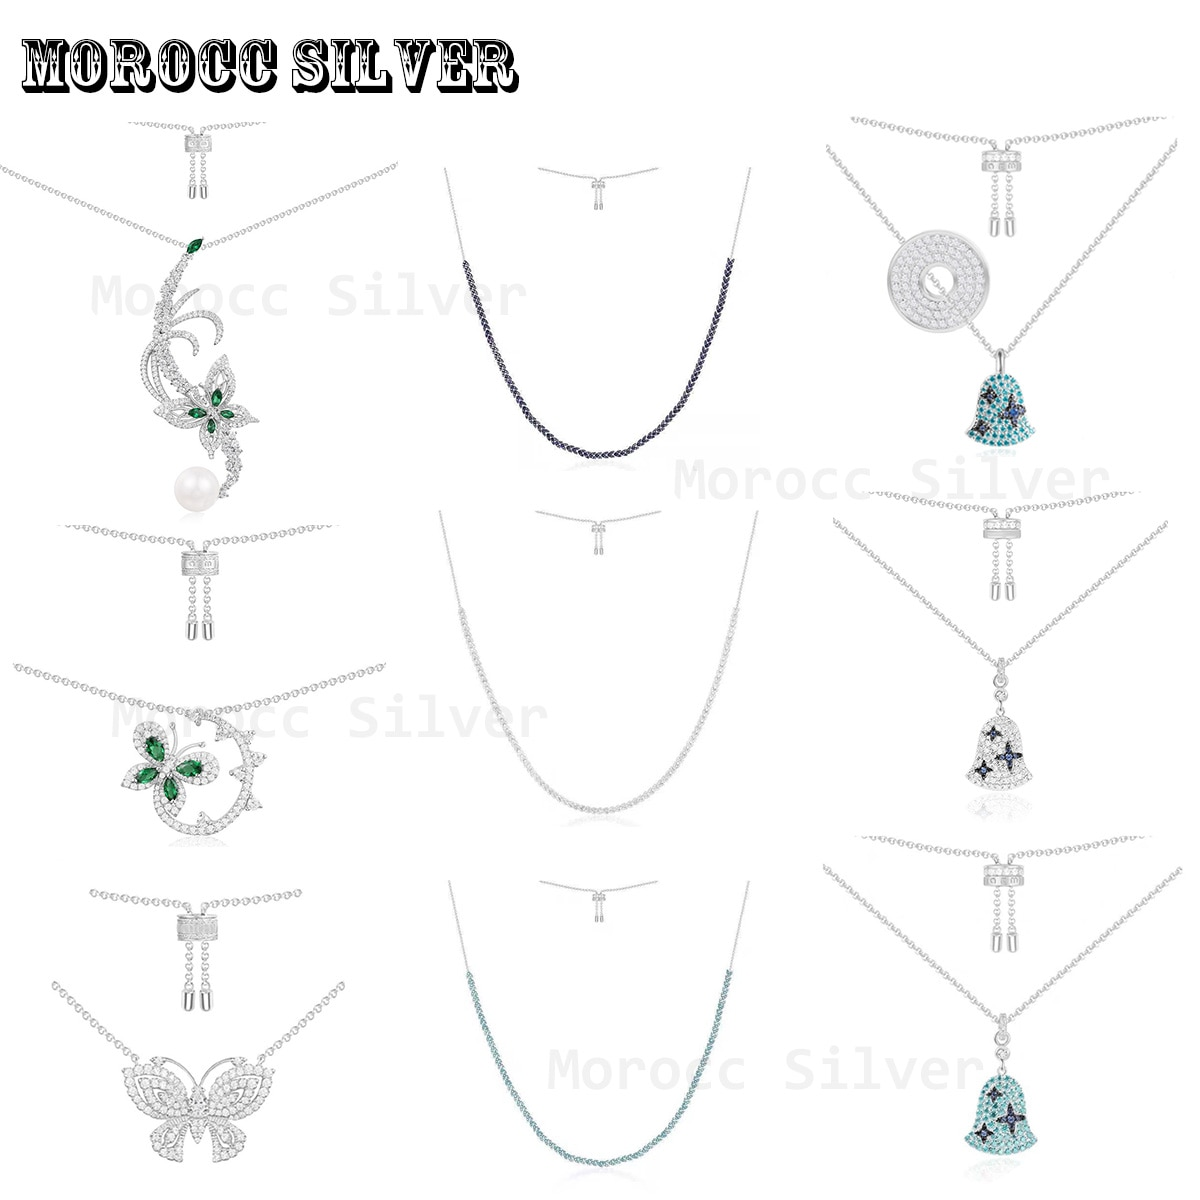 S925 Sterling Silver Jewelry 1:1 Copy, Light Luxury Retro Crystal Inlaid Butterfly Necklace Design Women's Sweater Necklace